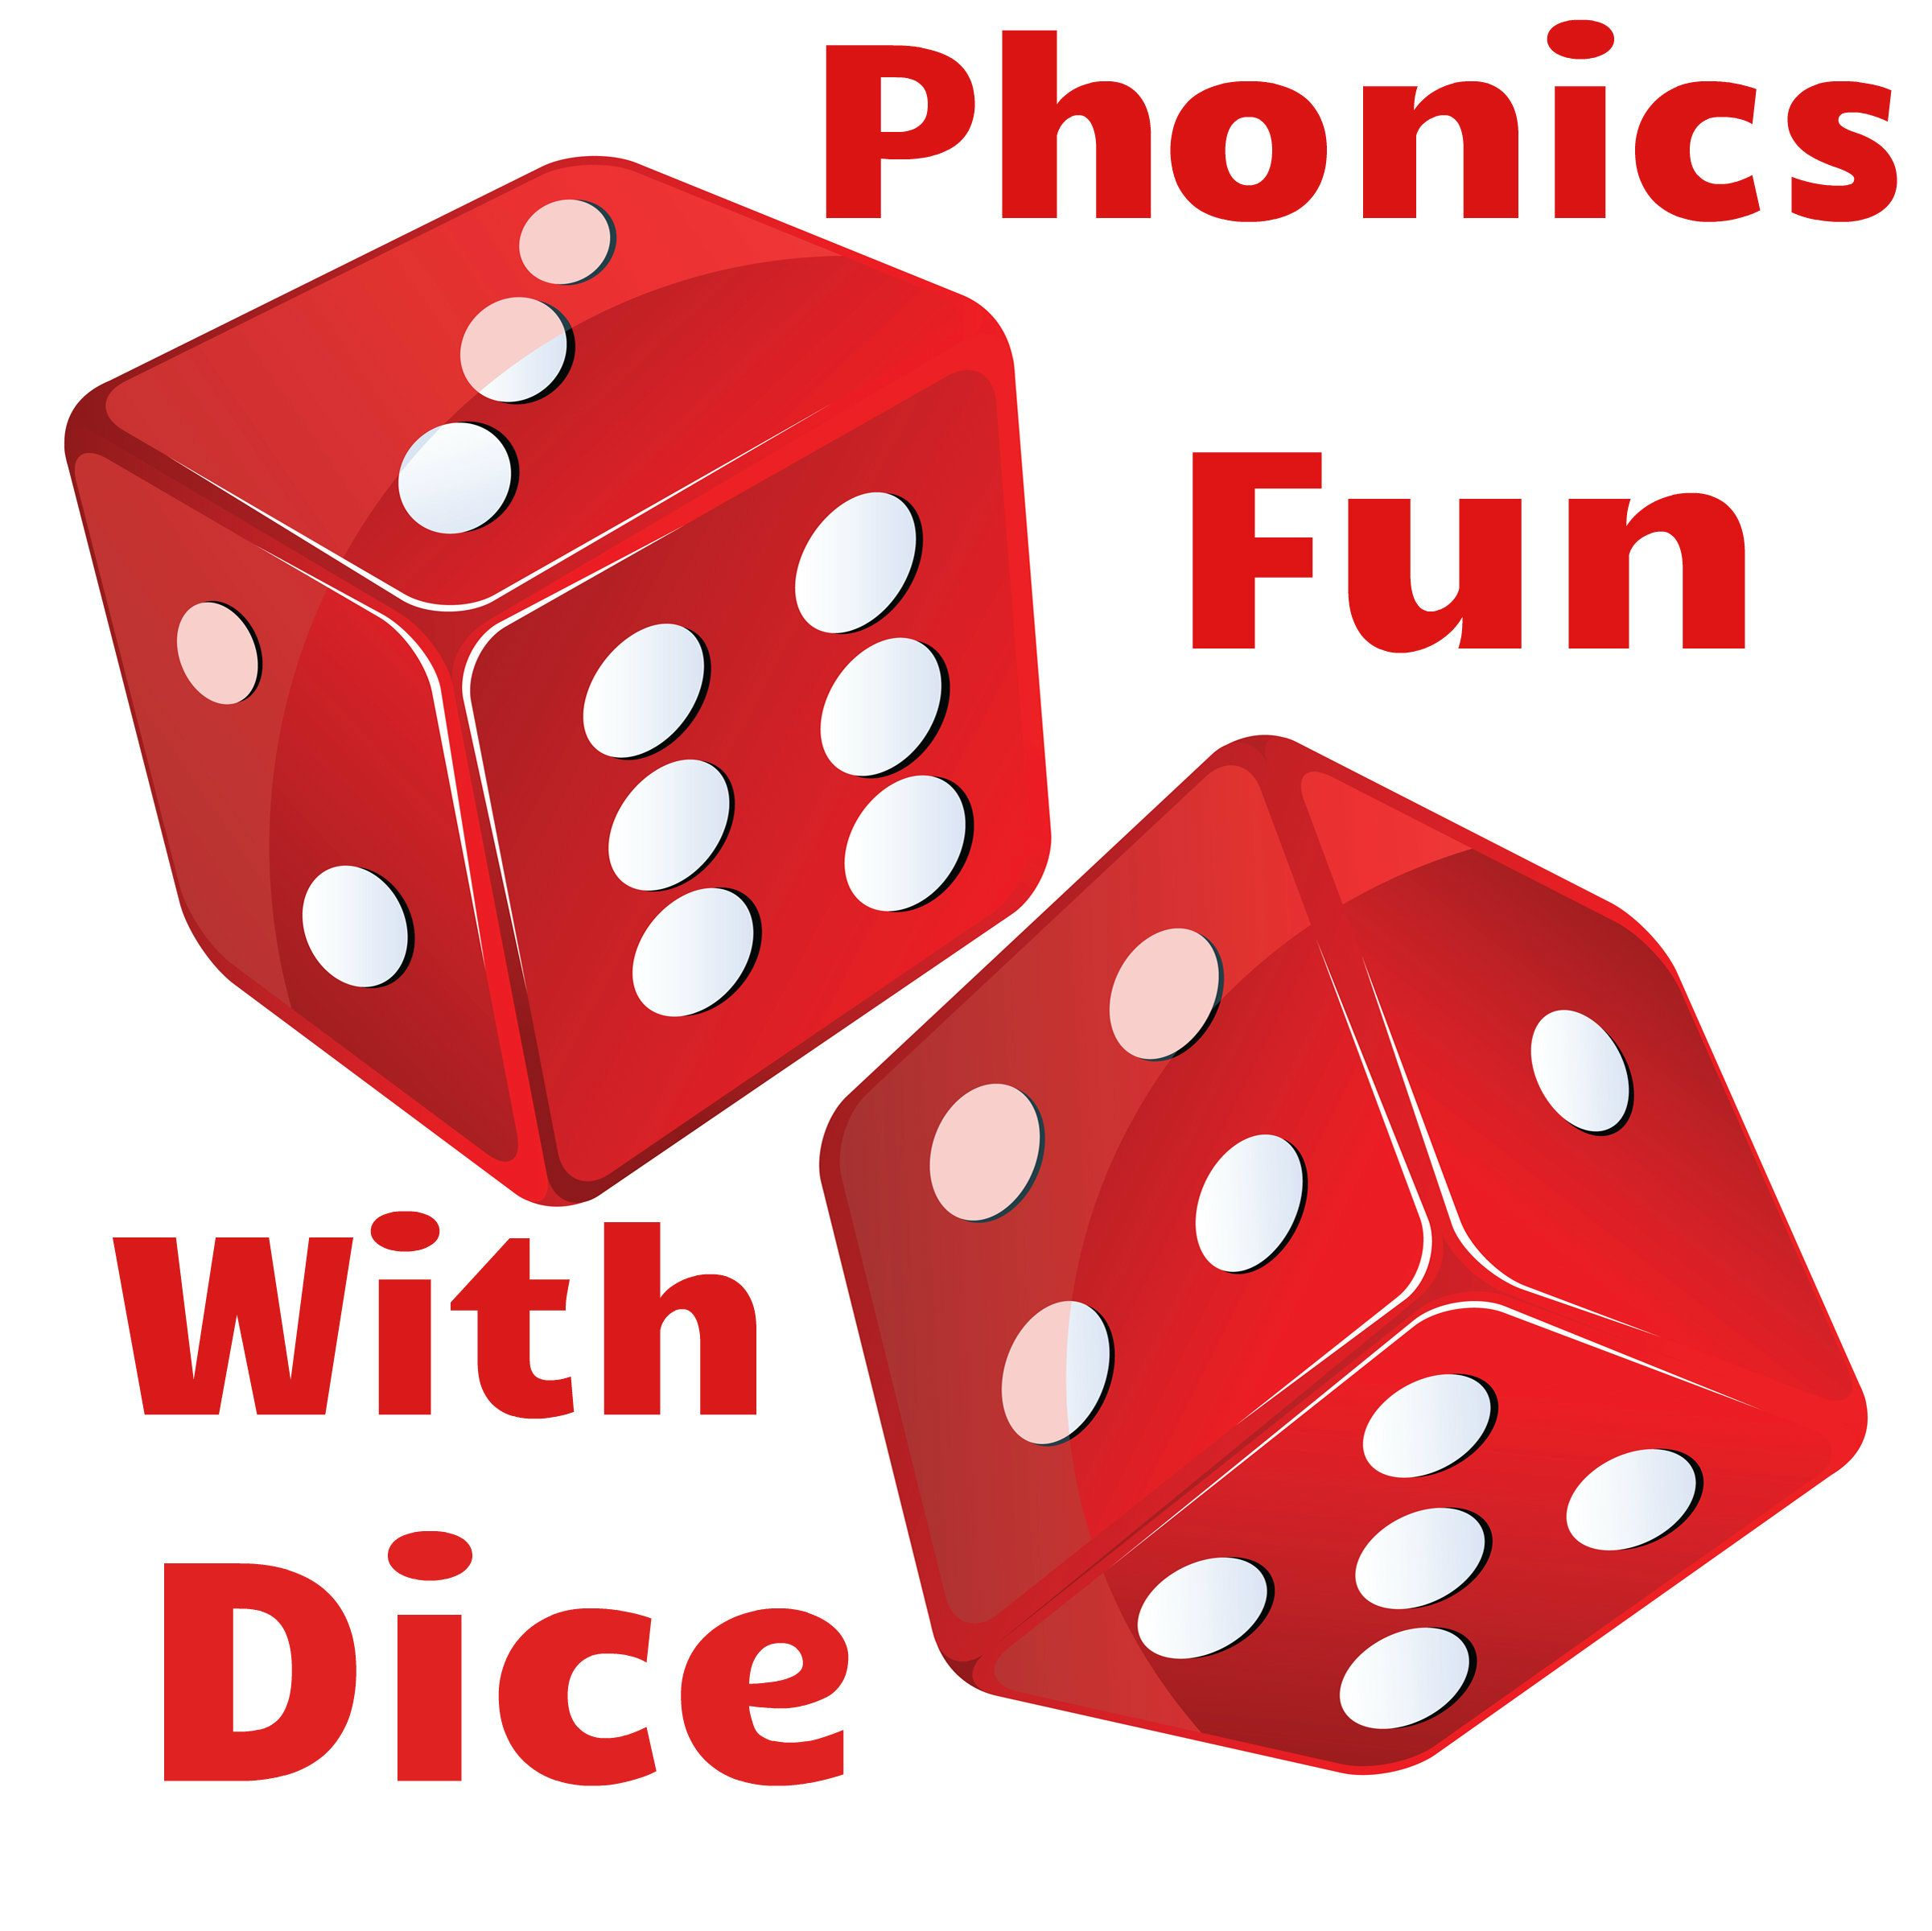 Phonics Fun With Interactive Dice! Add your own words to